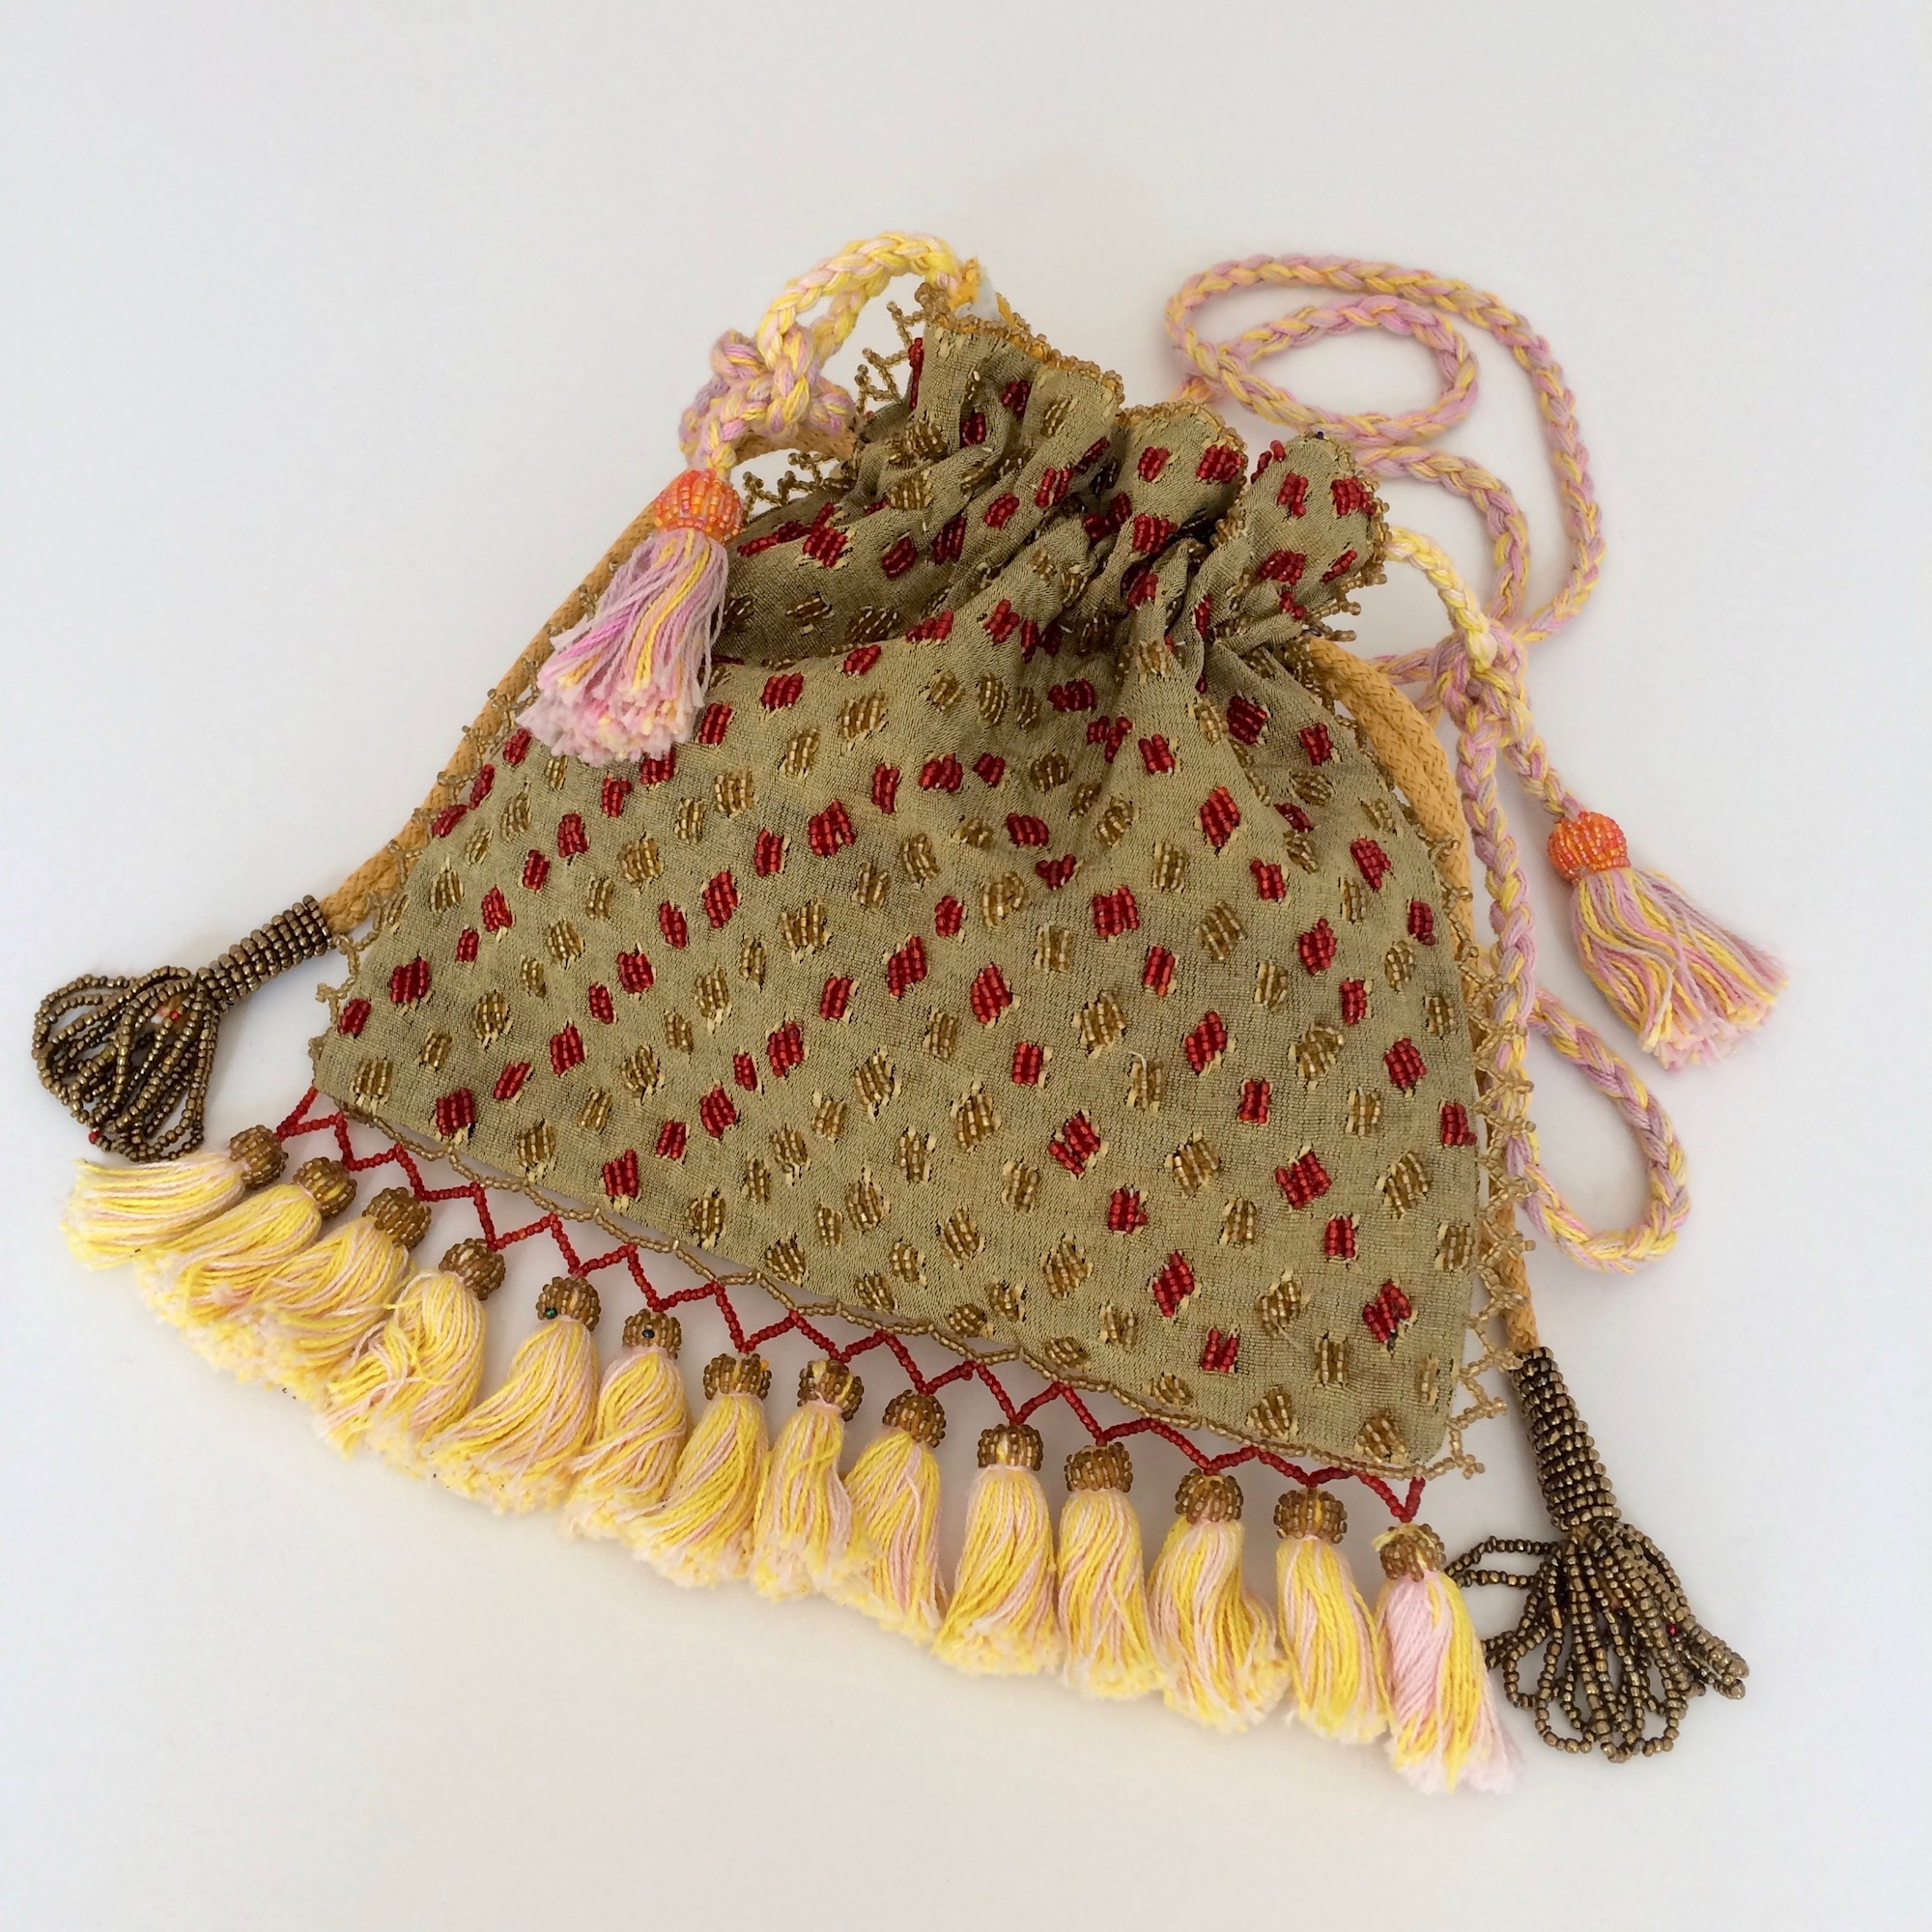 Bedouin Beaded Drawstring Shoulder Bag with Tassels